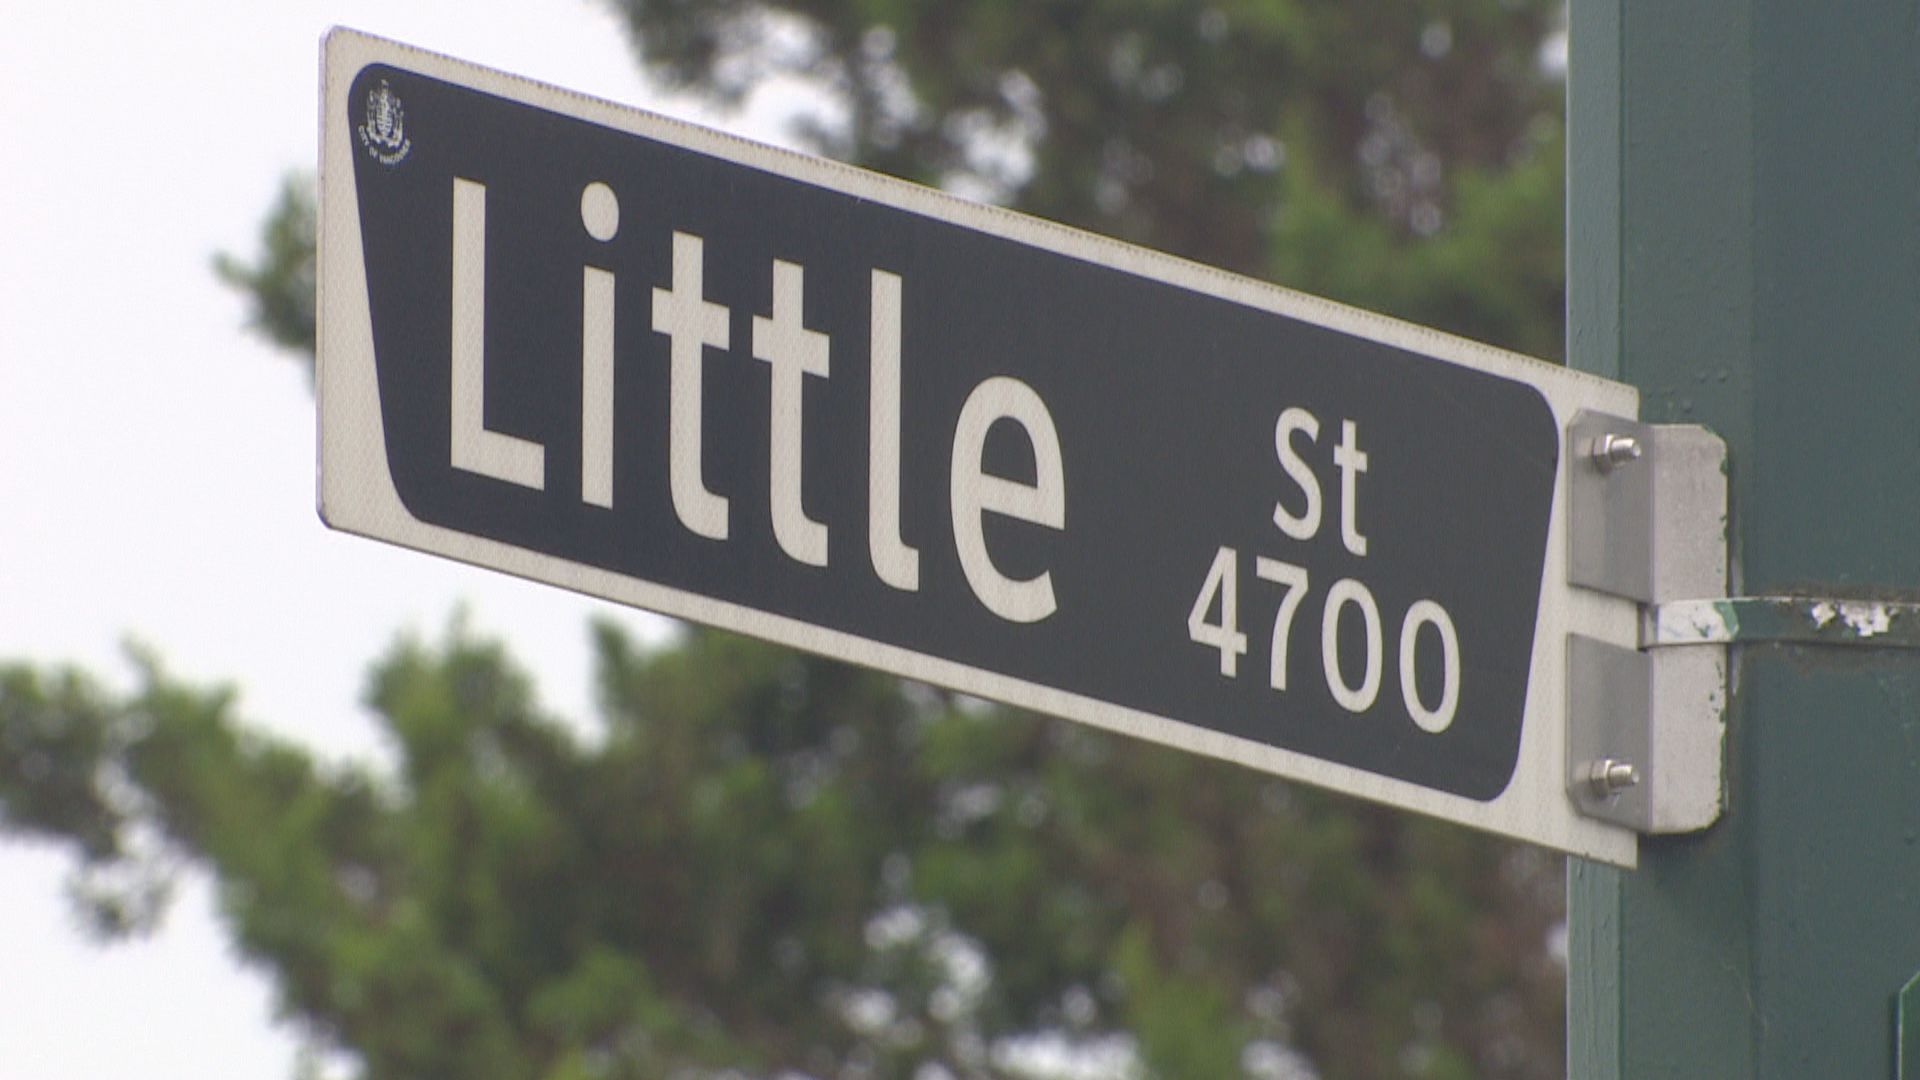 There is a street in Vancouver named Little Street and it's one block long.